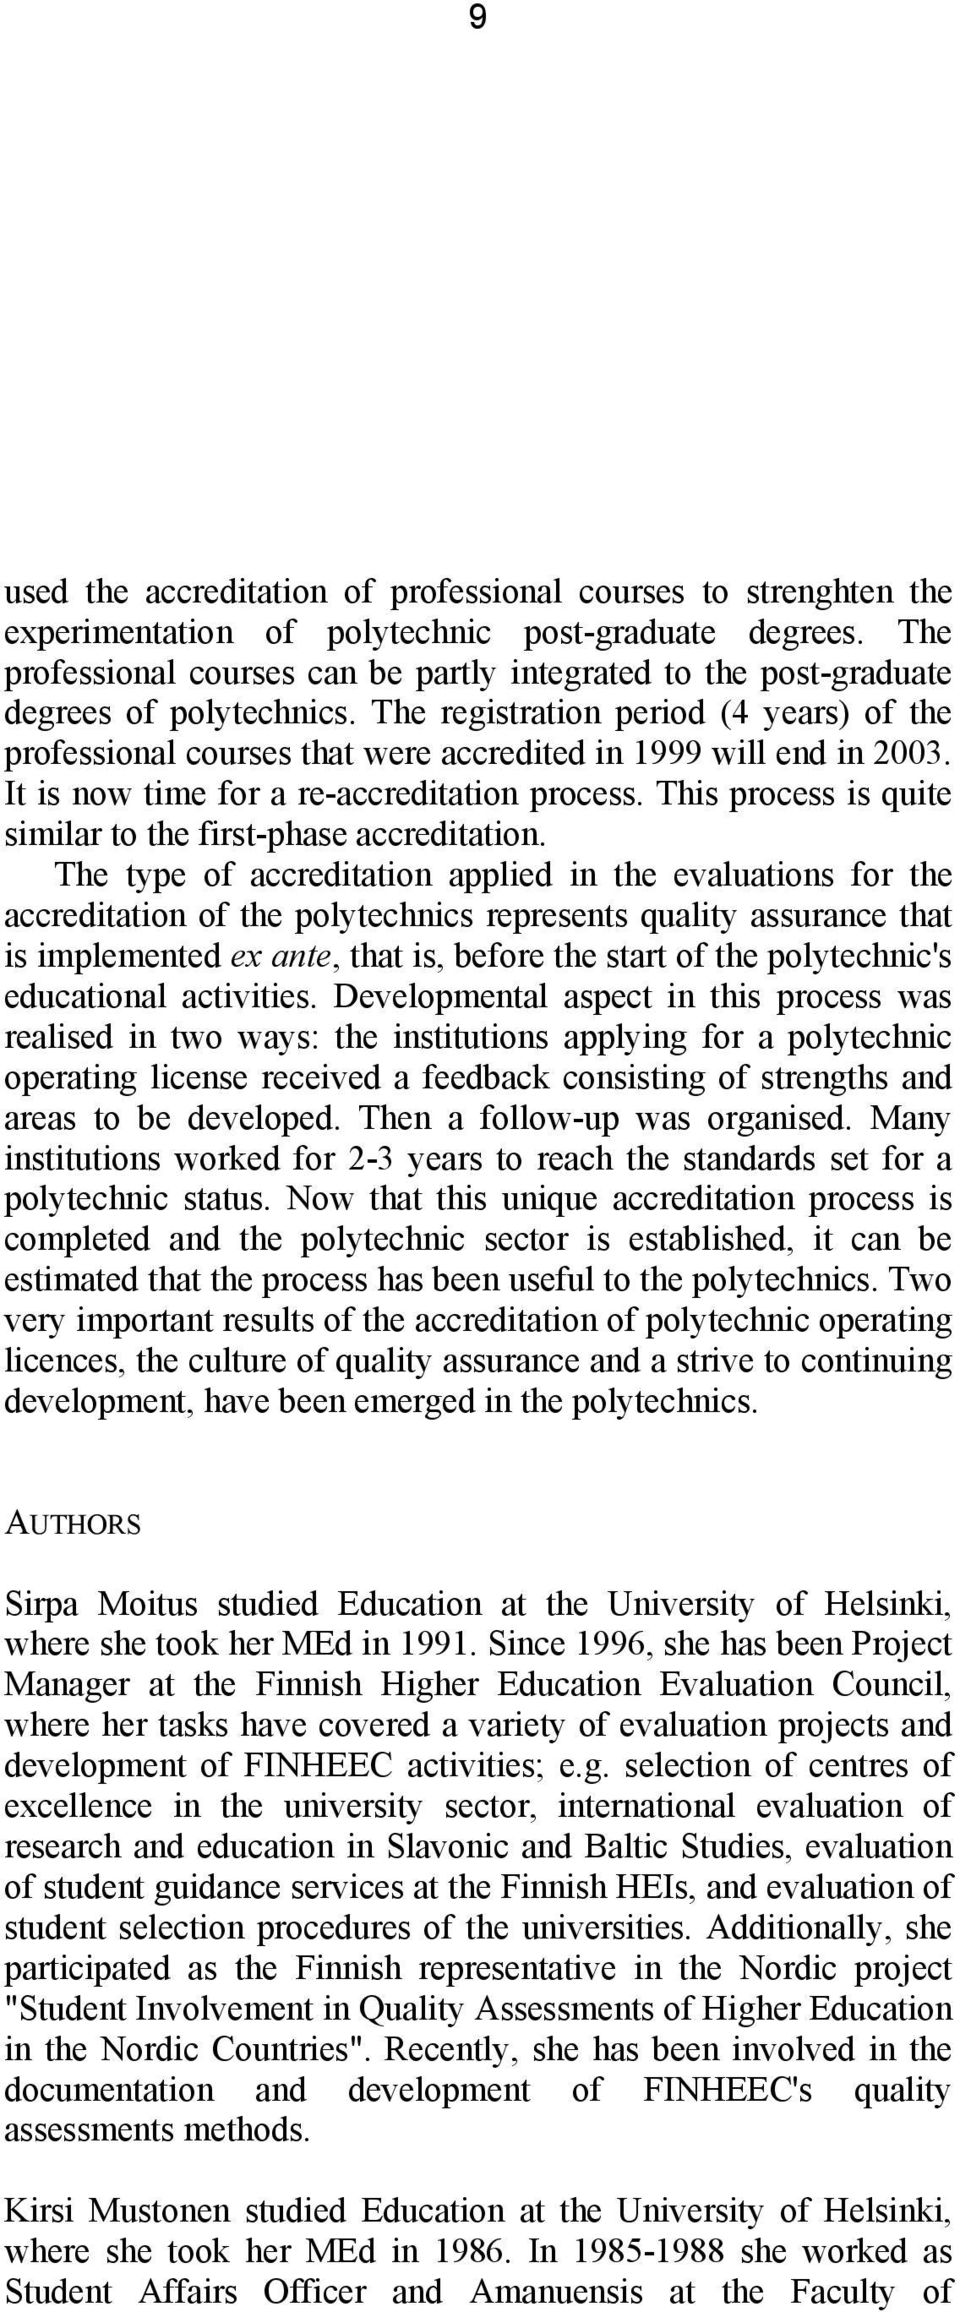 The registration period (4 years) of the professional courses that were accredited in 1999 will end in 2003. It is now time for a re-accreditation process.